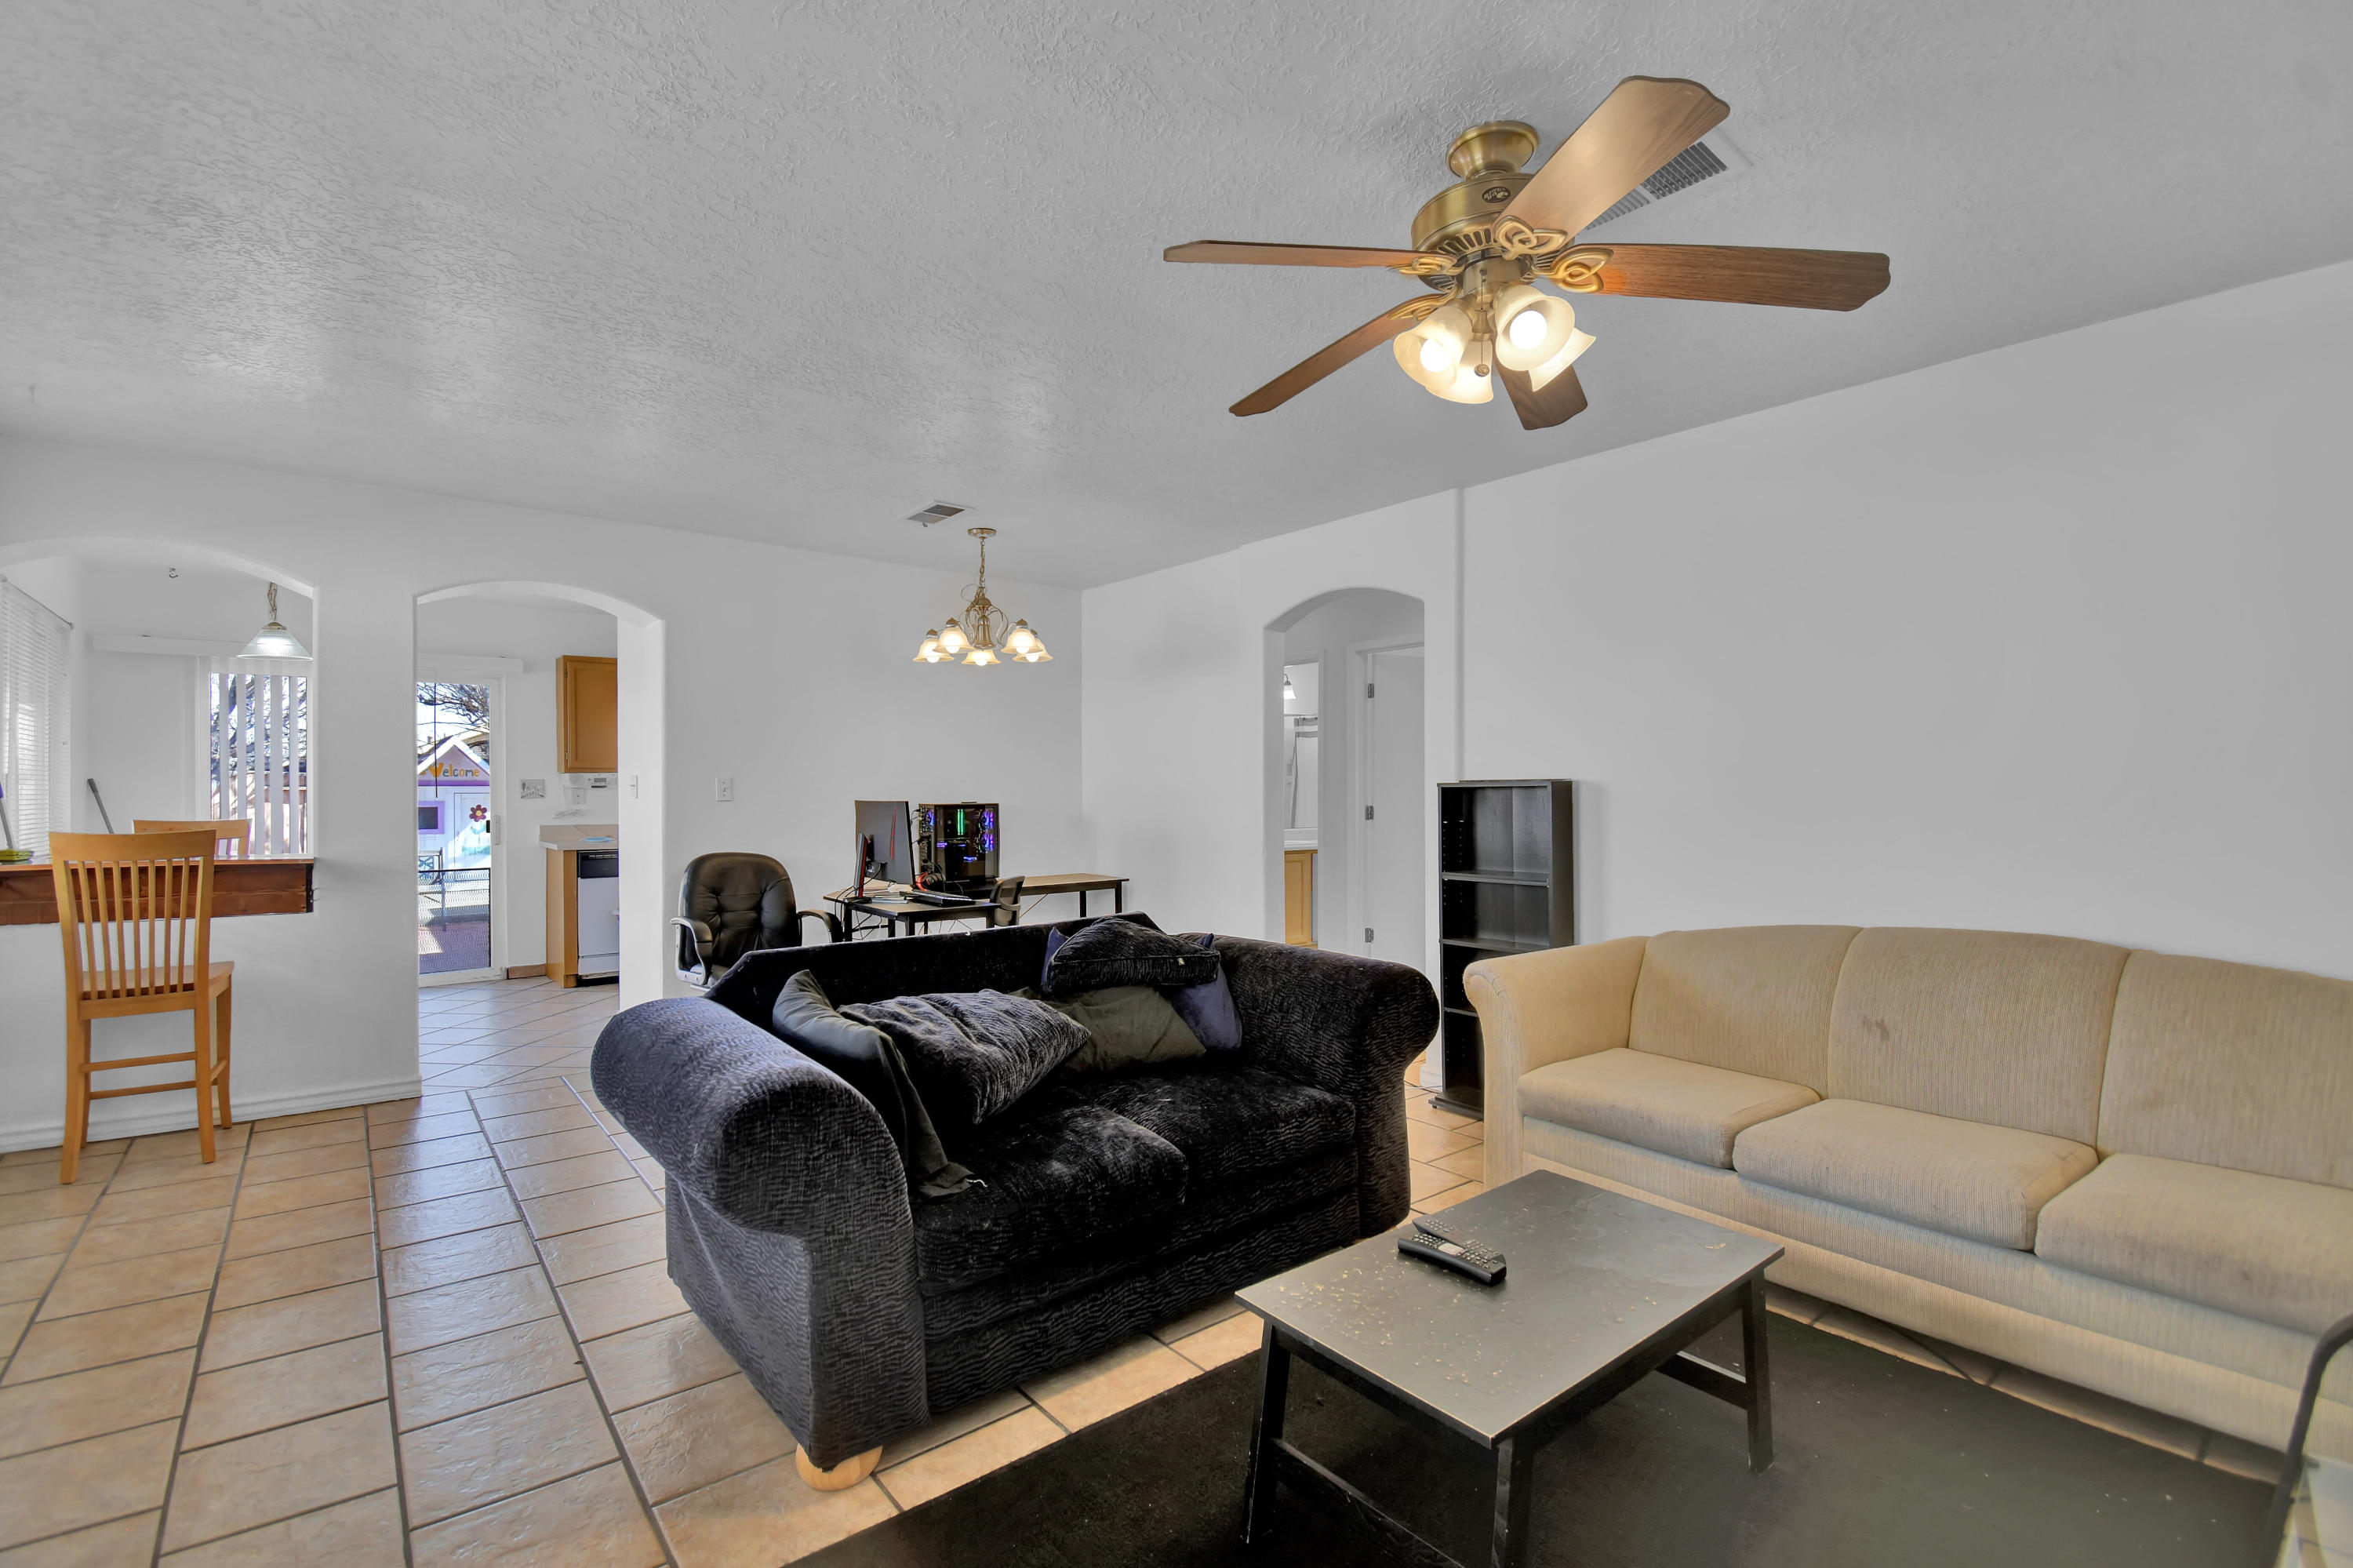 Cute 3 bedroom, 2 bath home with brand new roof in the south valley ready for its next owner! Wide open great room with tile flooring. The kitchen is compact and efficient with a nice breakfast bar. All bedrooms are good-sized with roomy closets. The backyard is large and fenced for privacy and includes a built in spot for the outdoor grill master! Nice big trees with the potential to provide the perfect amount of shade on a sunny Albuquerque afternoon. Most rooms newly painted except for the master bedroom and the back room. Water heater is only two years old and swamp cooler only 3 years old. Come see this one today!